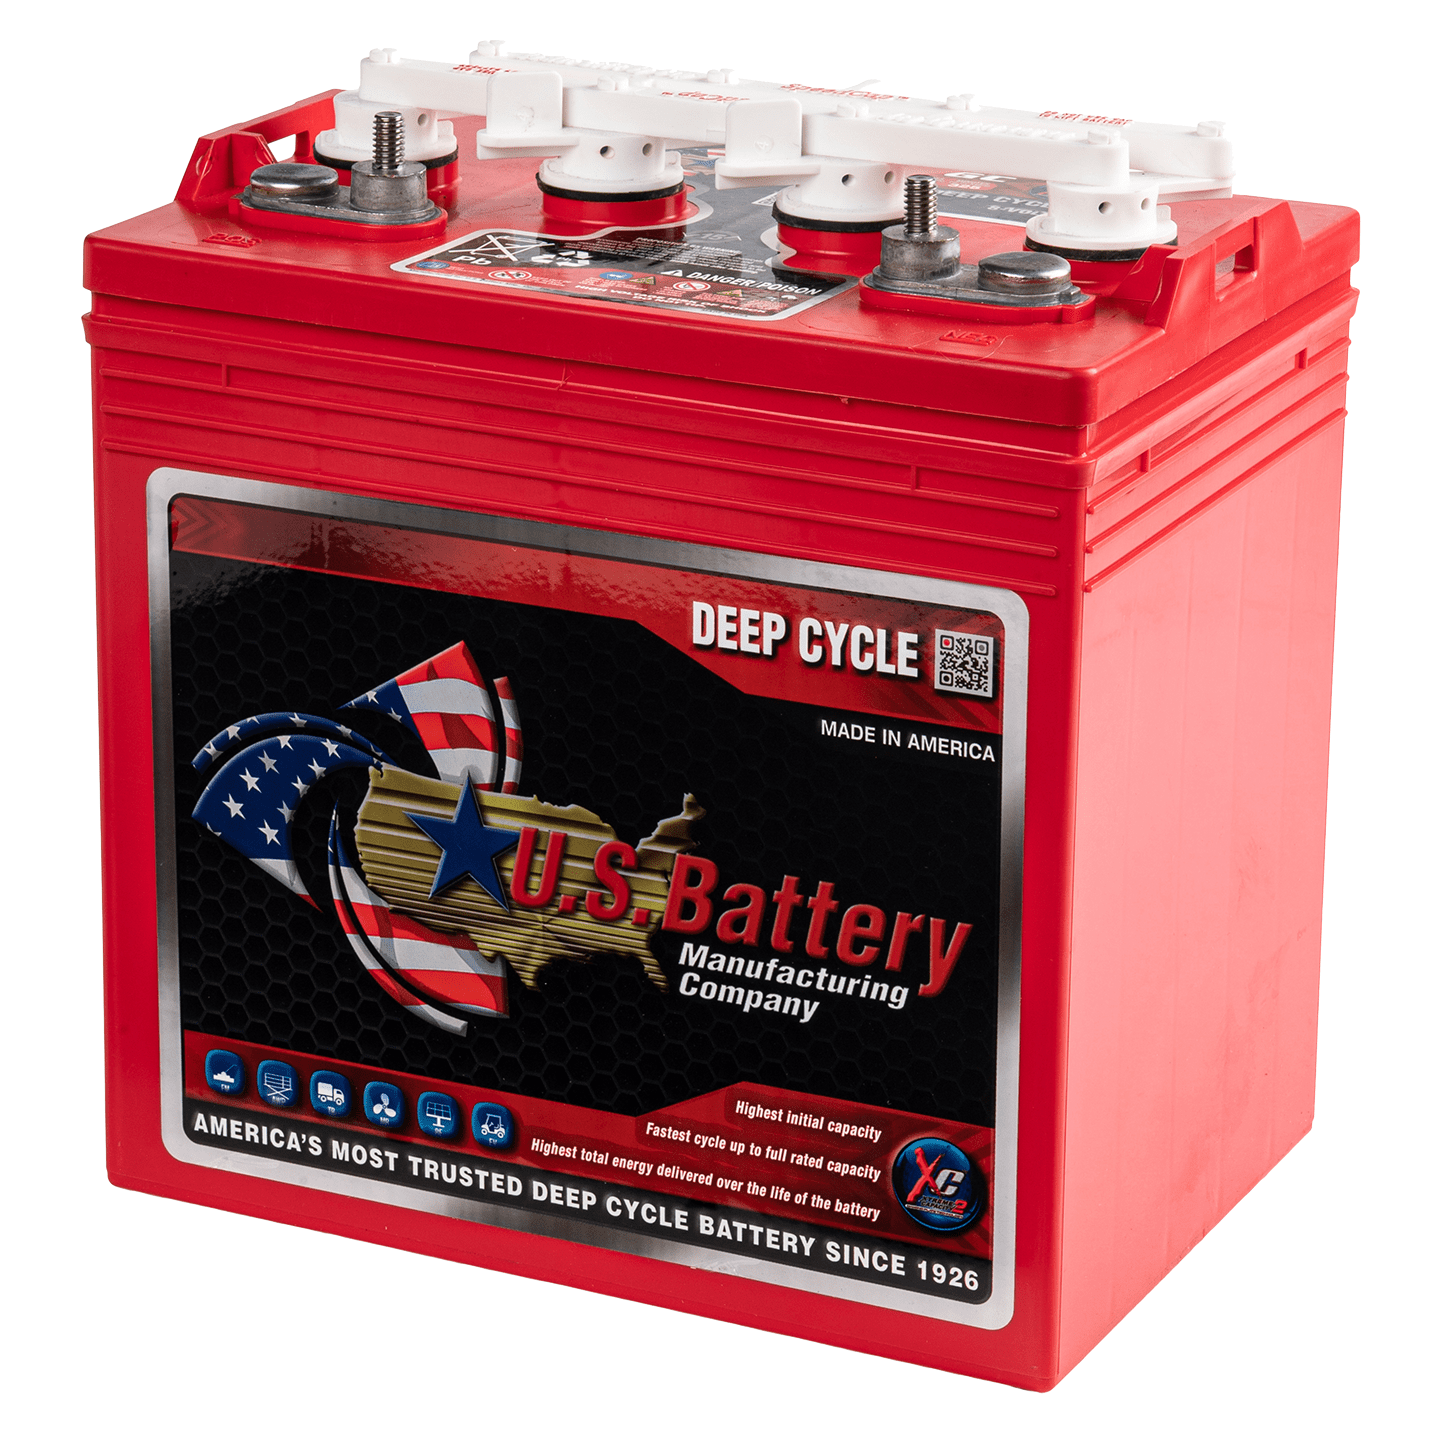 US Battery Deep Cycle accu 8V 170Ah - Type US 8VGC